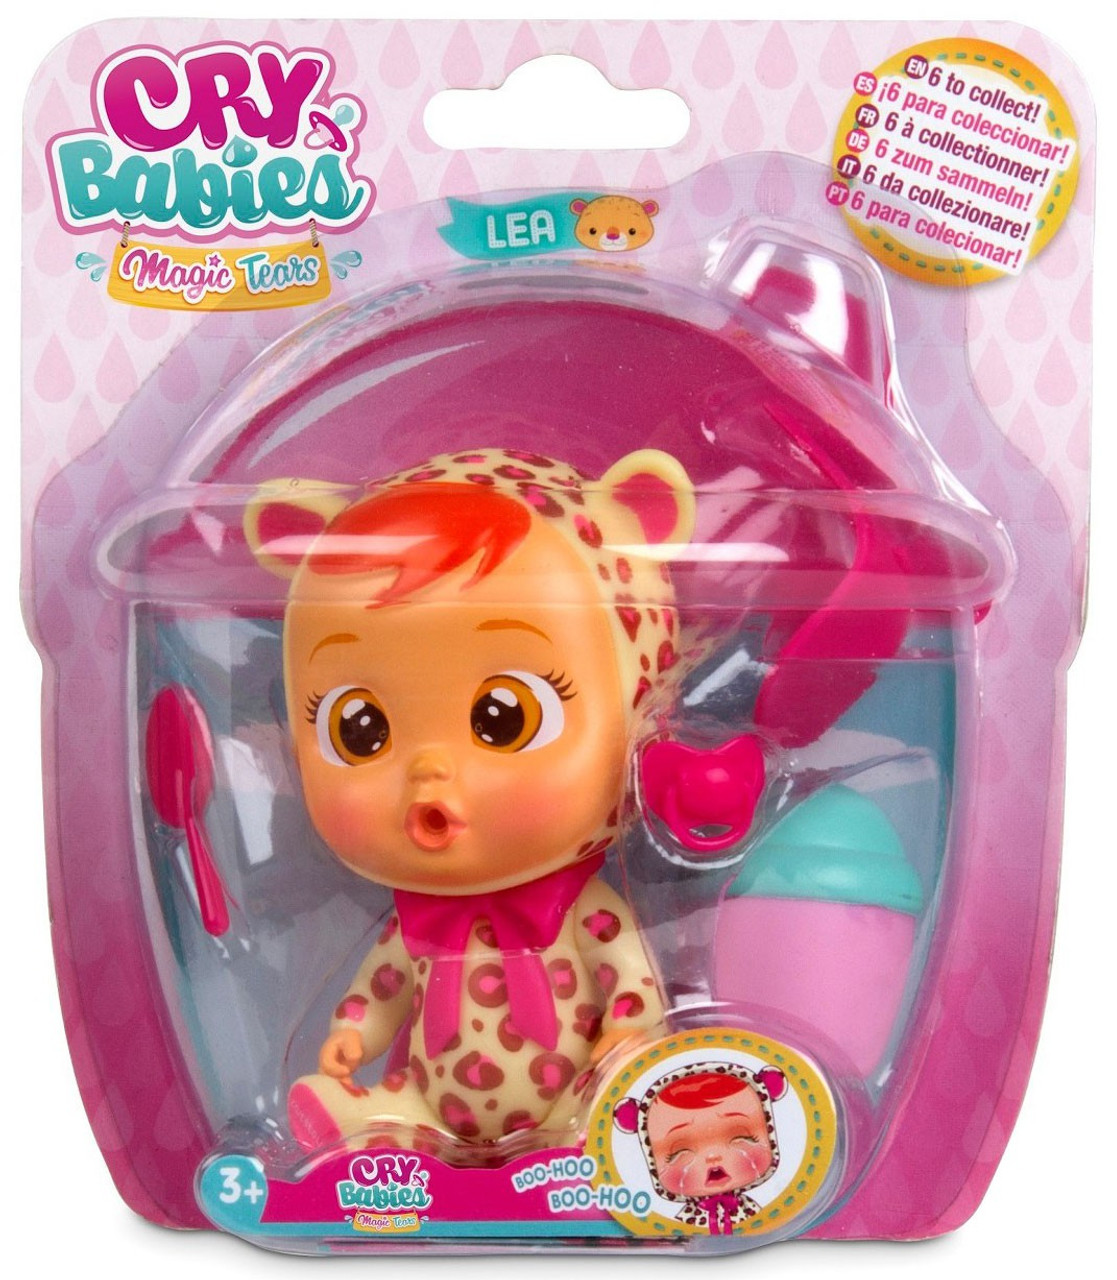 Cry Babies Lady Doll